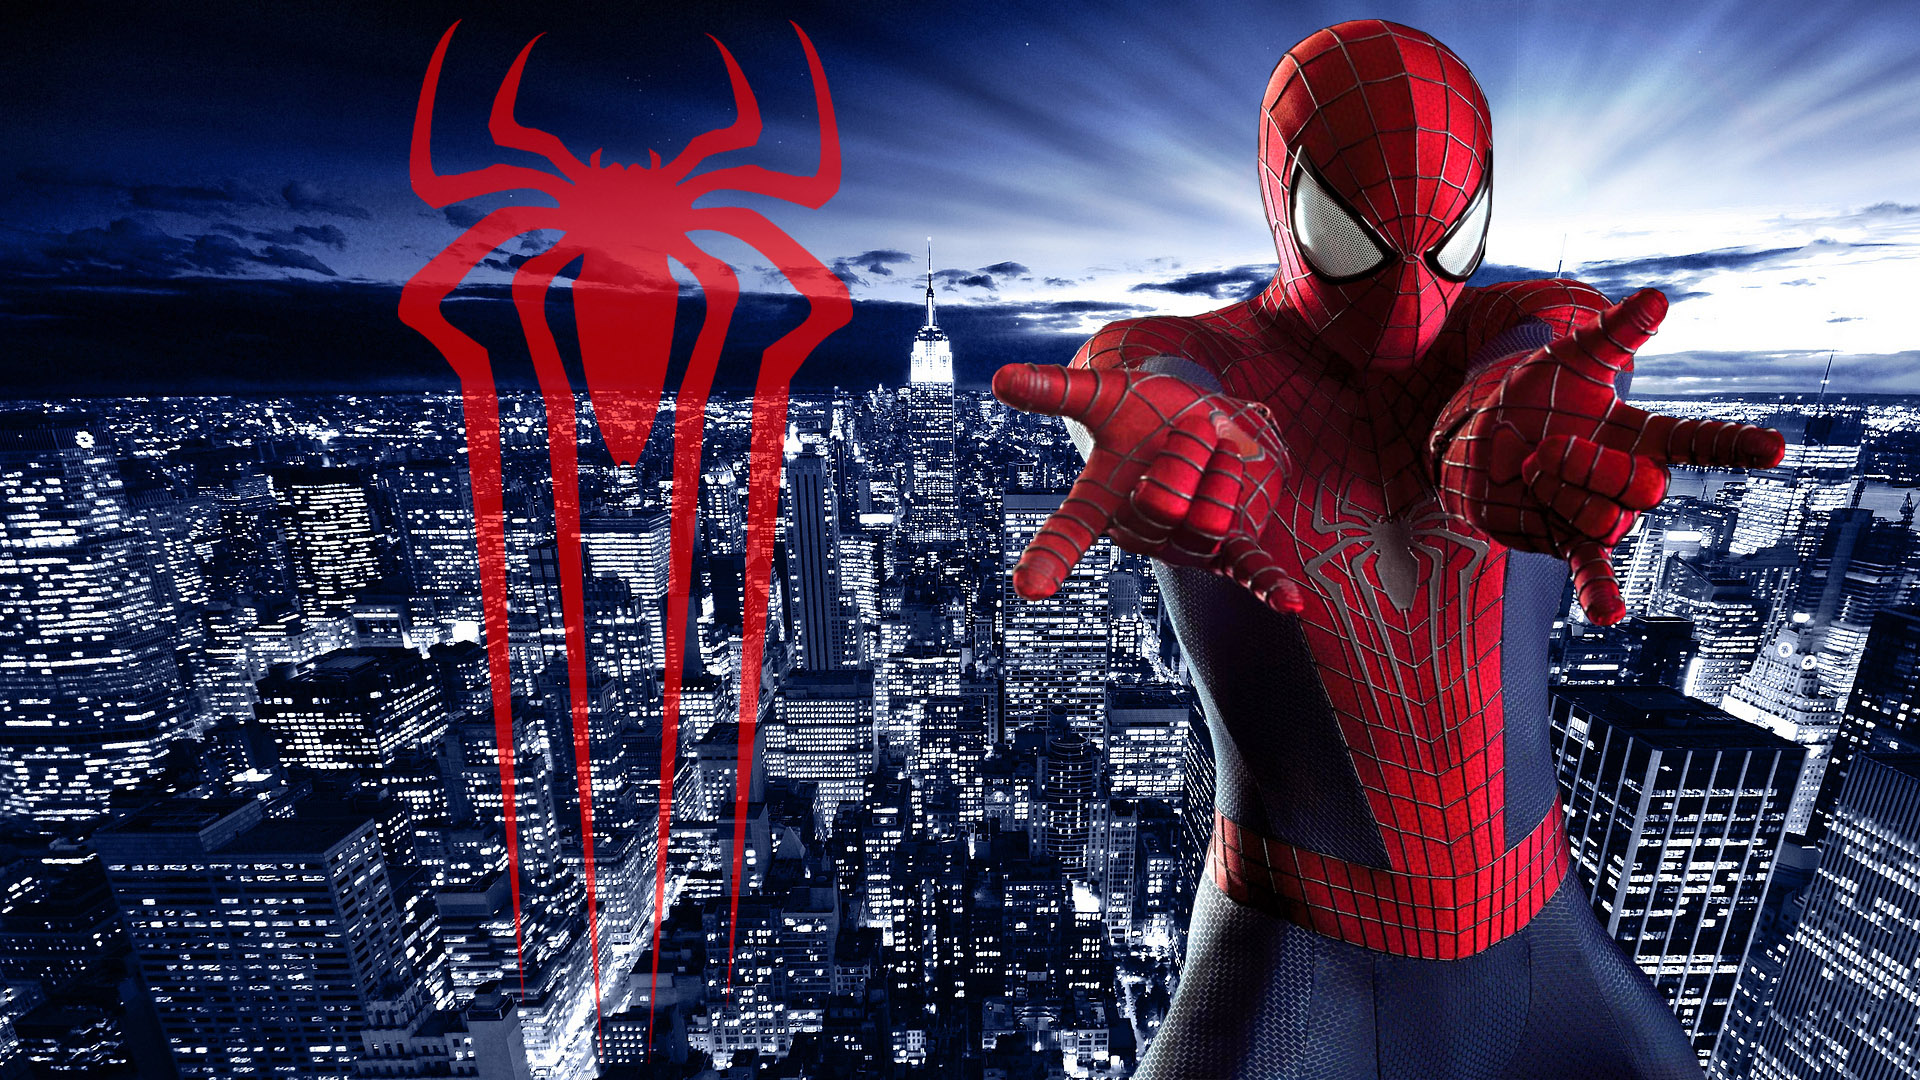 Amazing spider man logo wallpaper